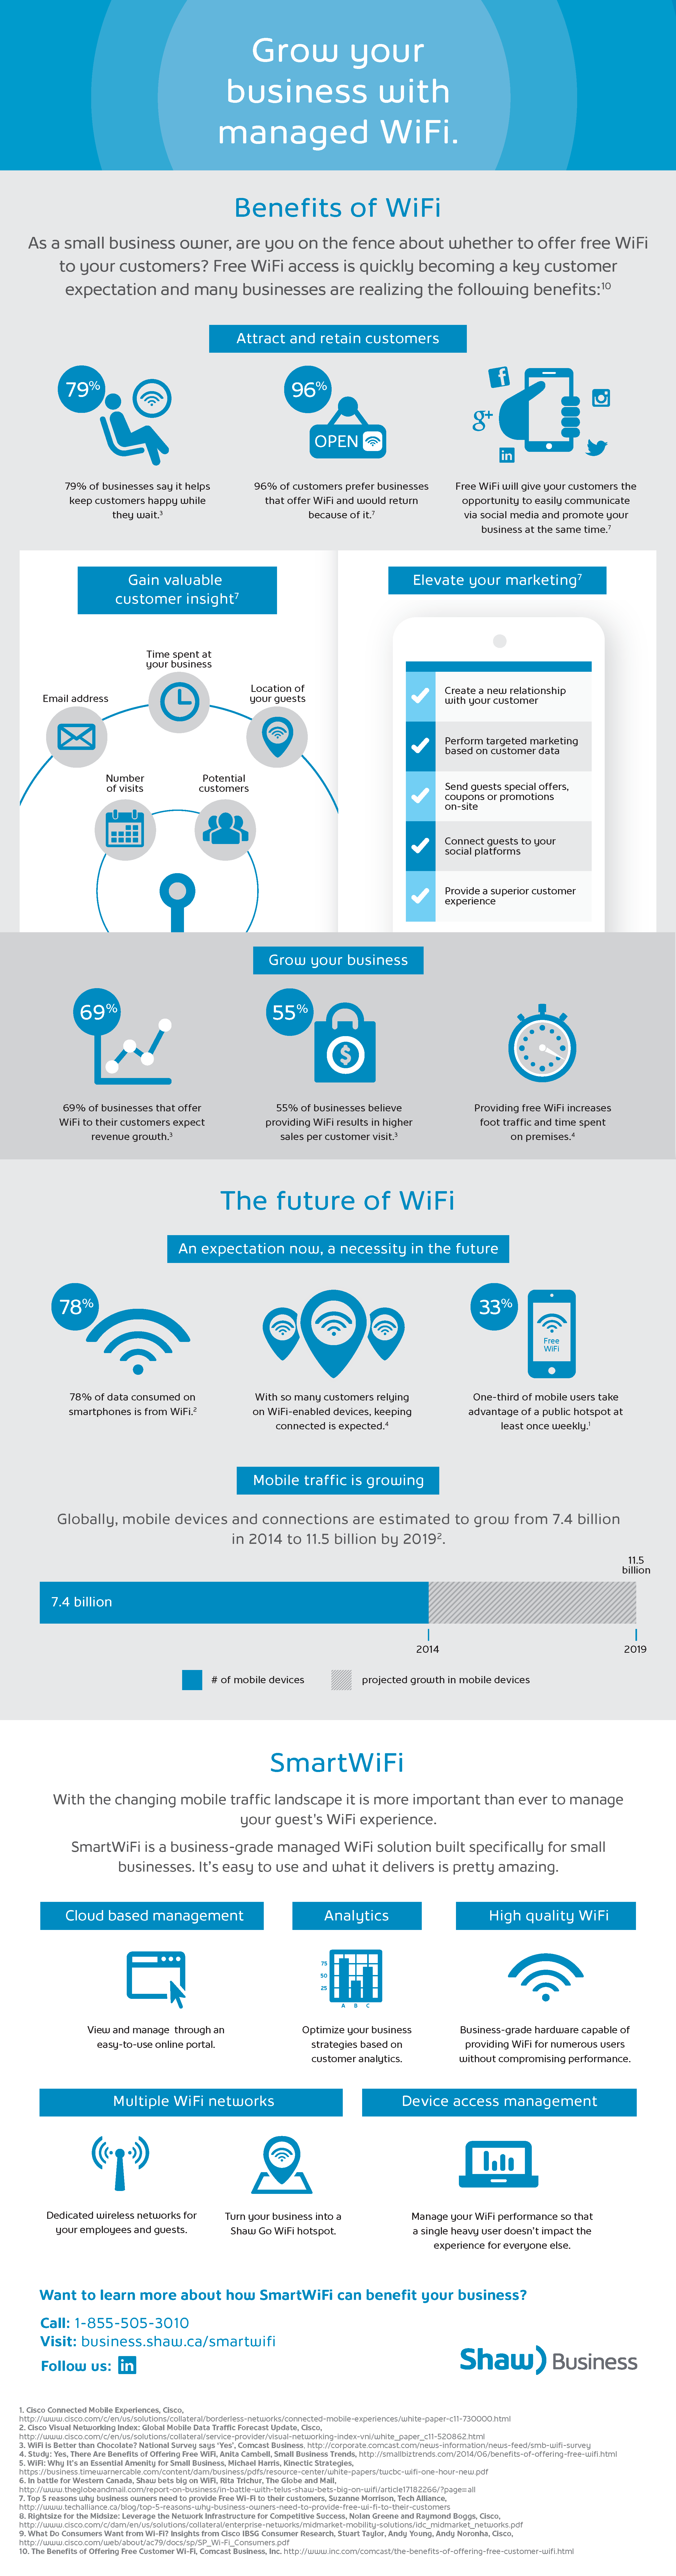 Grow your business with managed WiFi